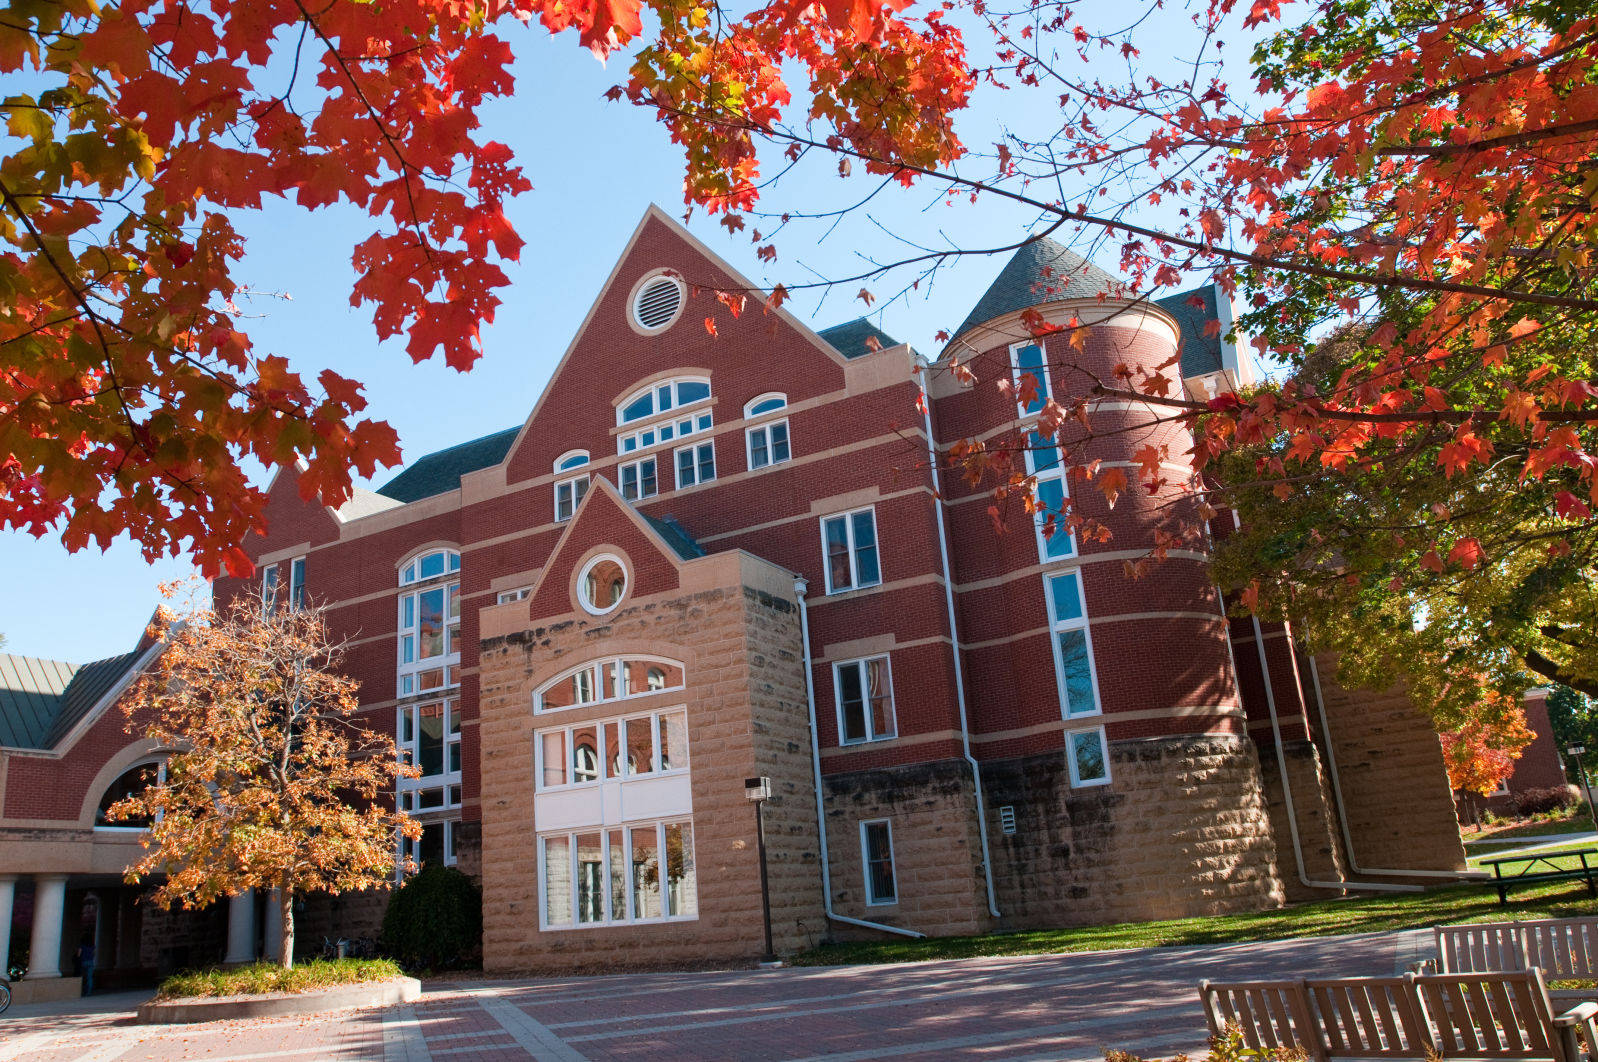 Fall_Campus_Photo_Shoot_Buildings_2010.jpg